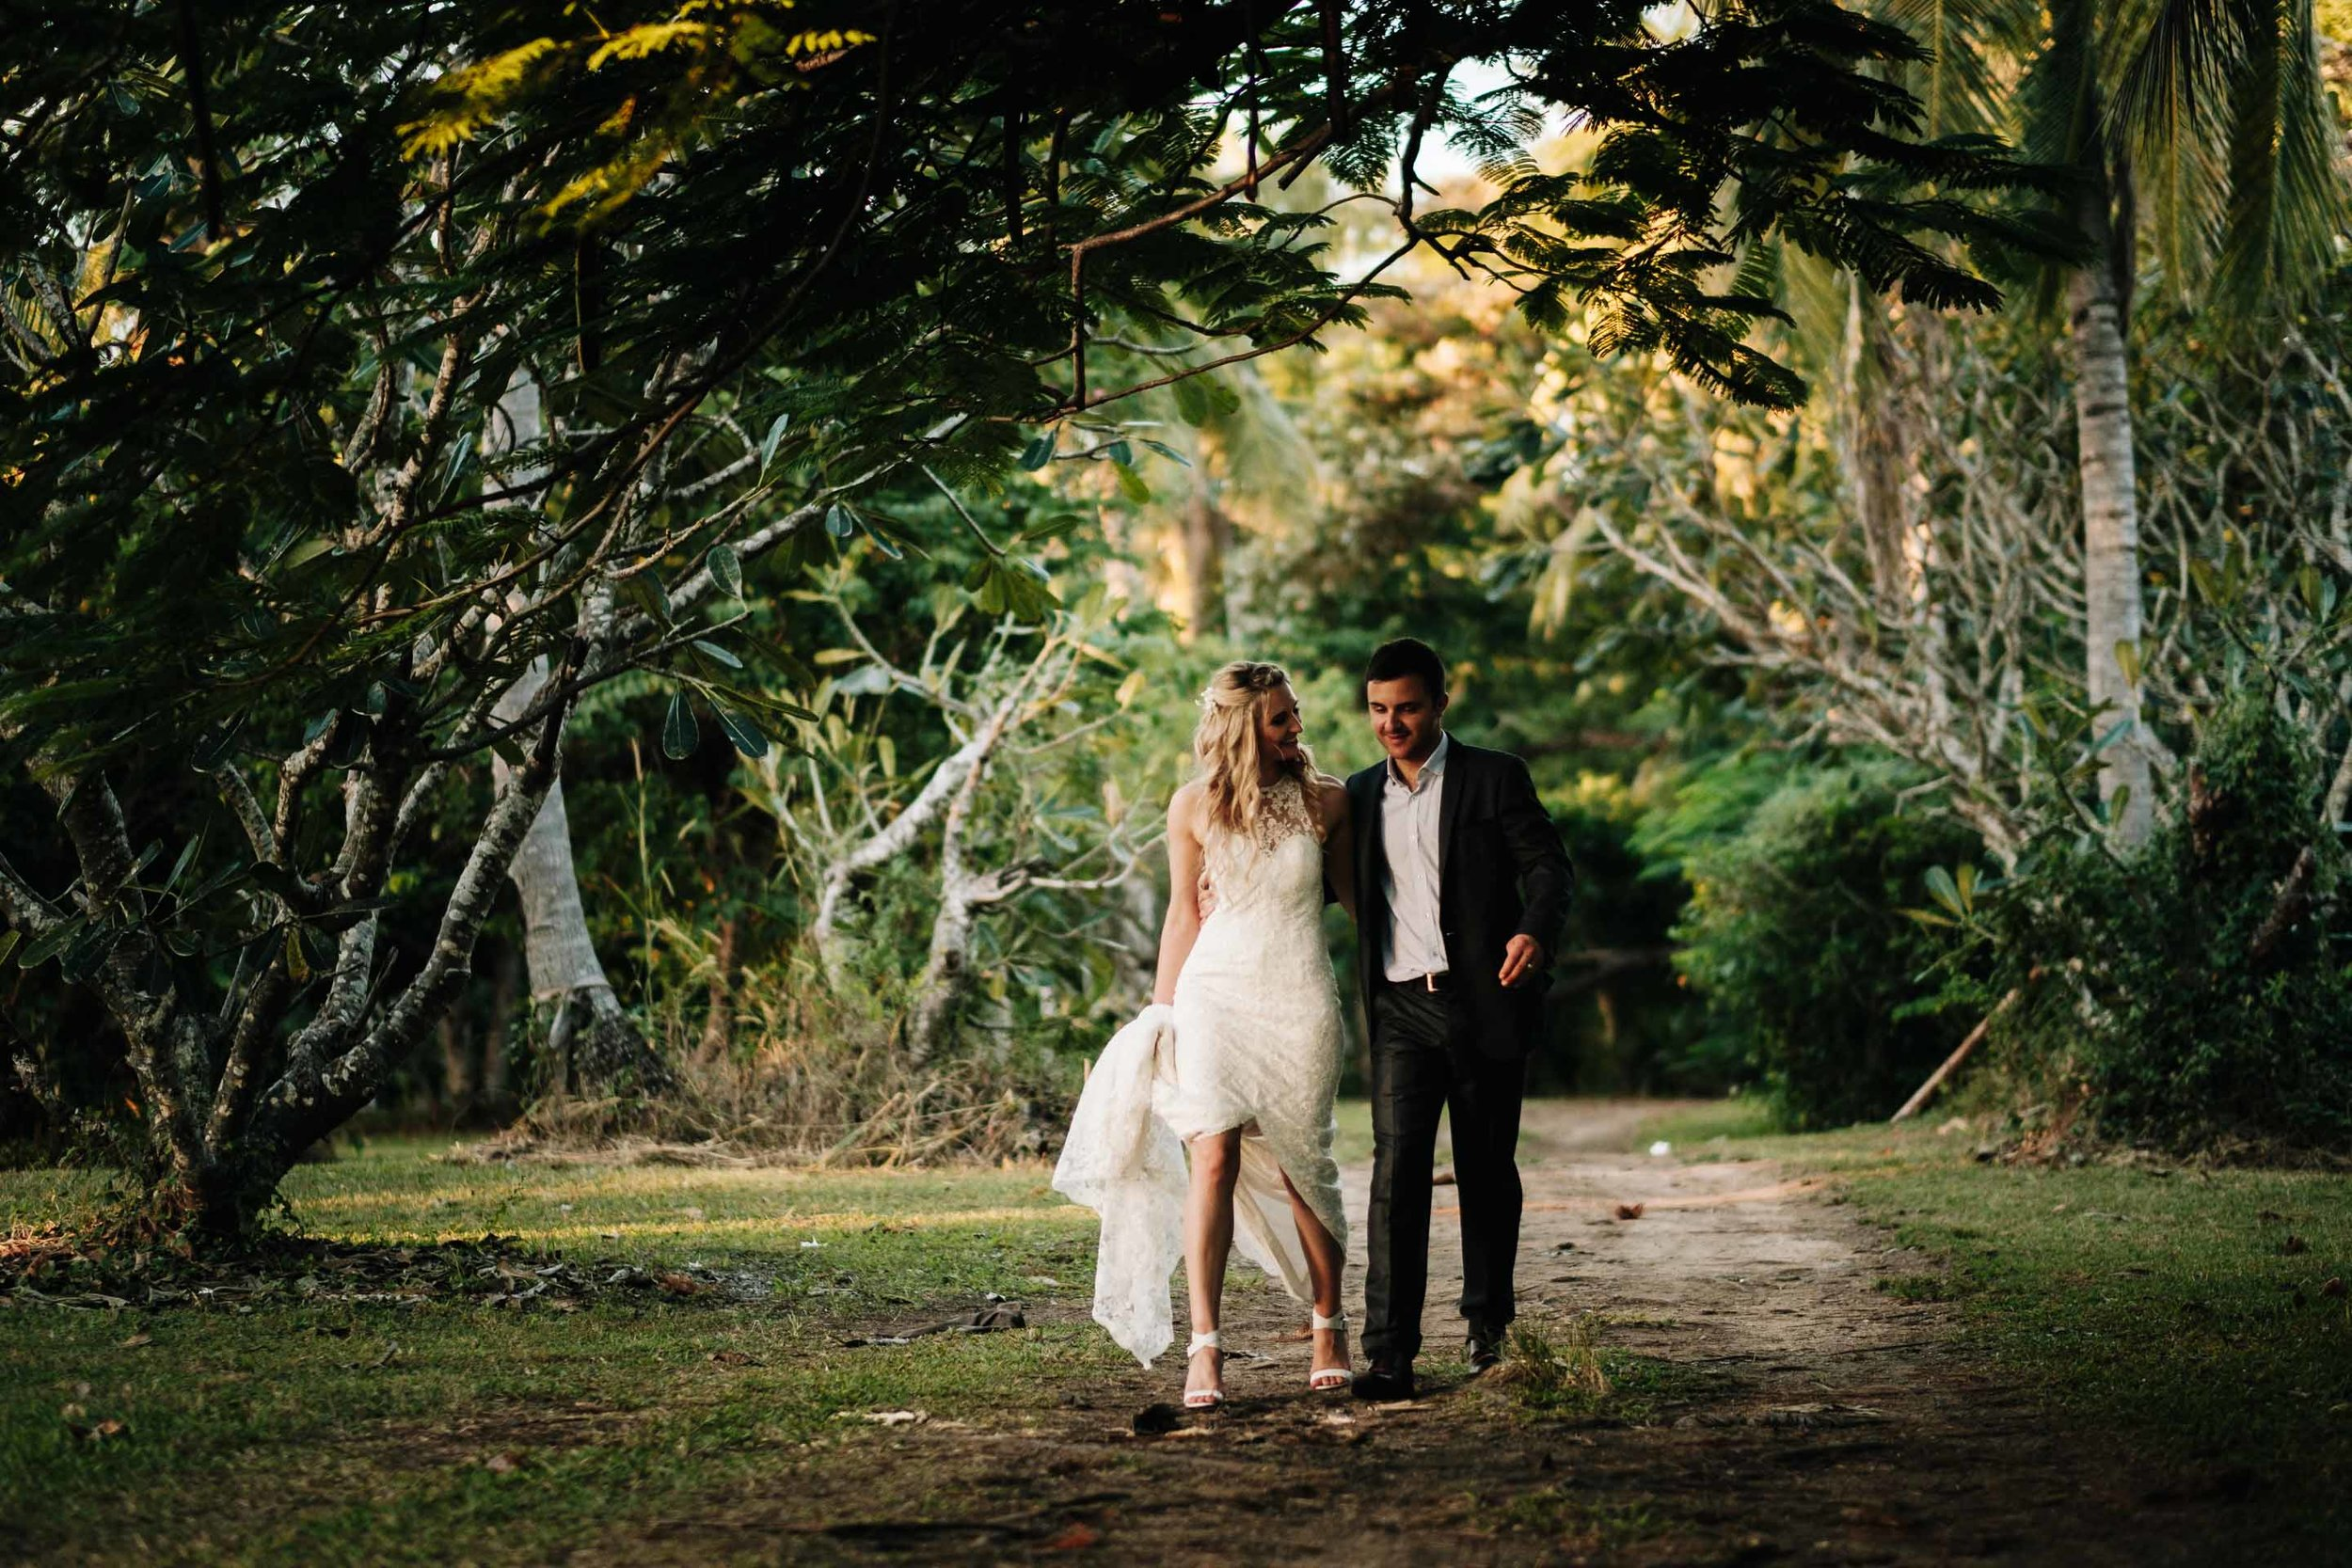 the bride and groom walking together hand in hand under trees on a sandy dirt road